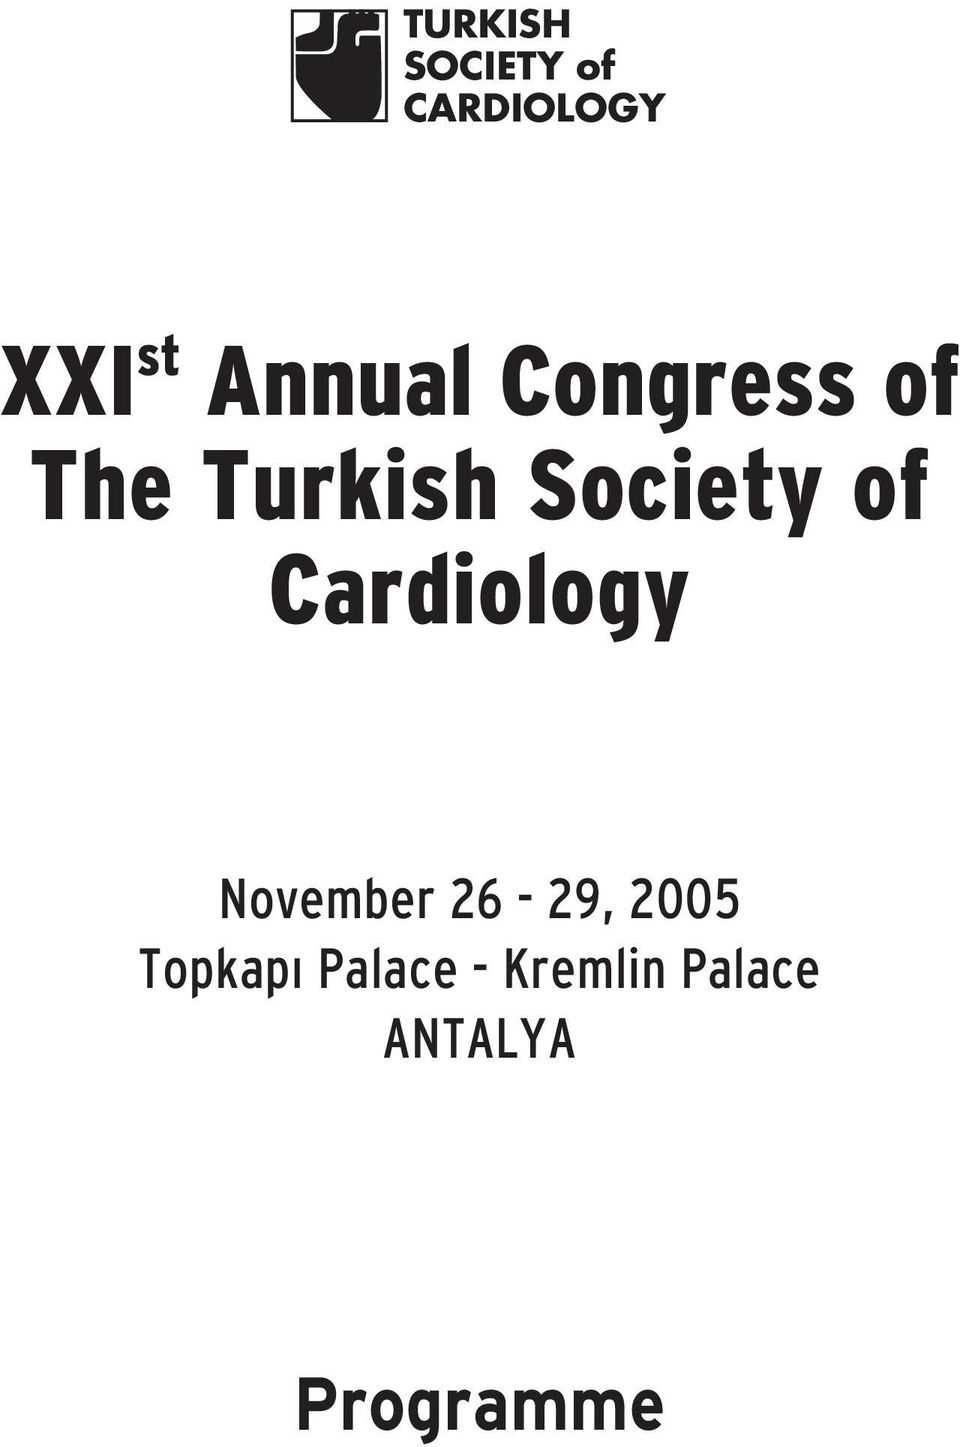 of Cardiology November 26-29, 2005